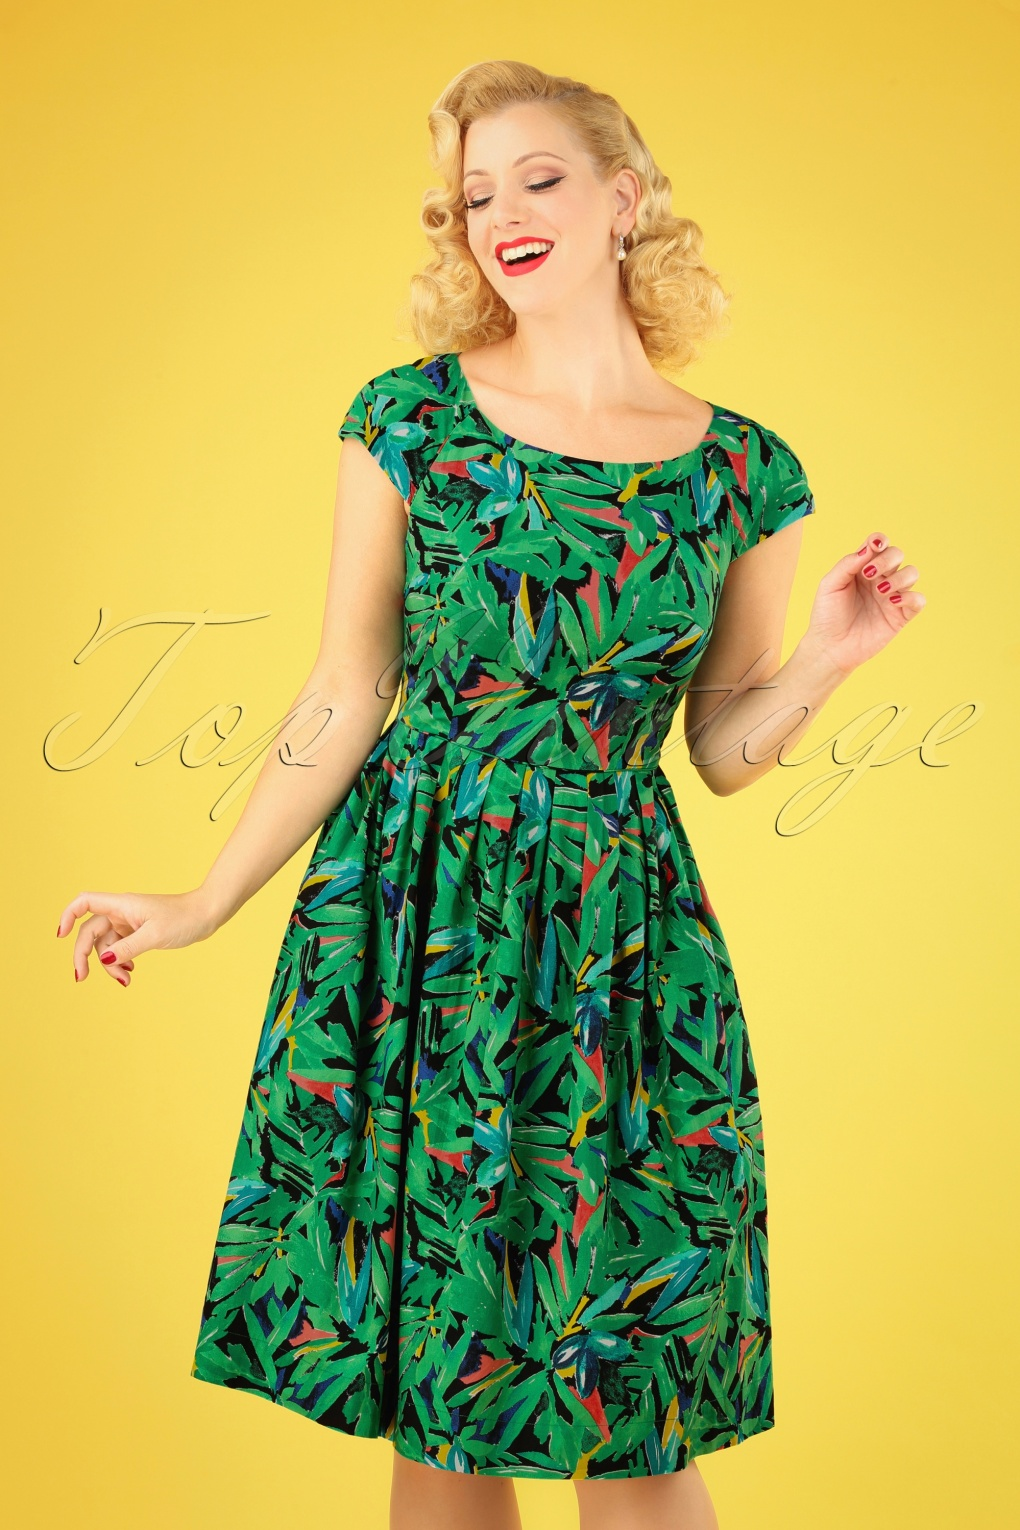 New Fifties Dresses | 50s Inspired Dresses 50s Claudia Hothouse Palms Swing Dress in Multi £56.54 AT vintagedancer.com